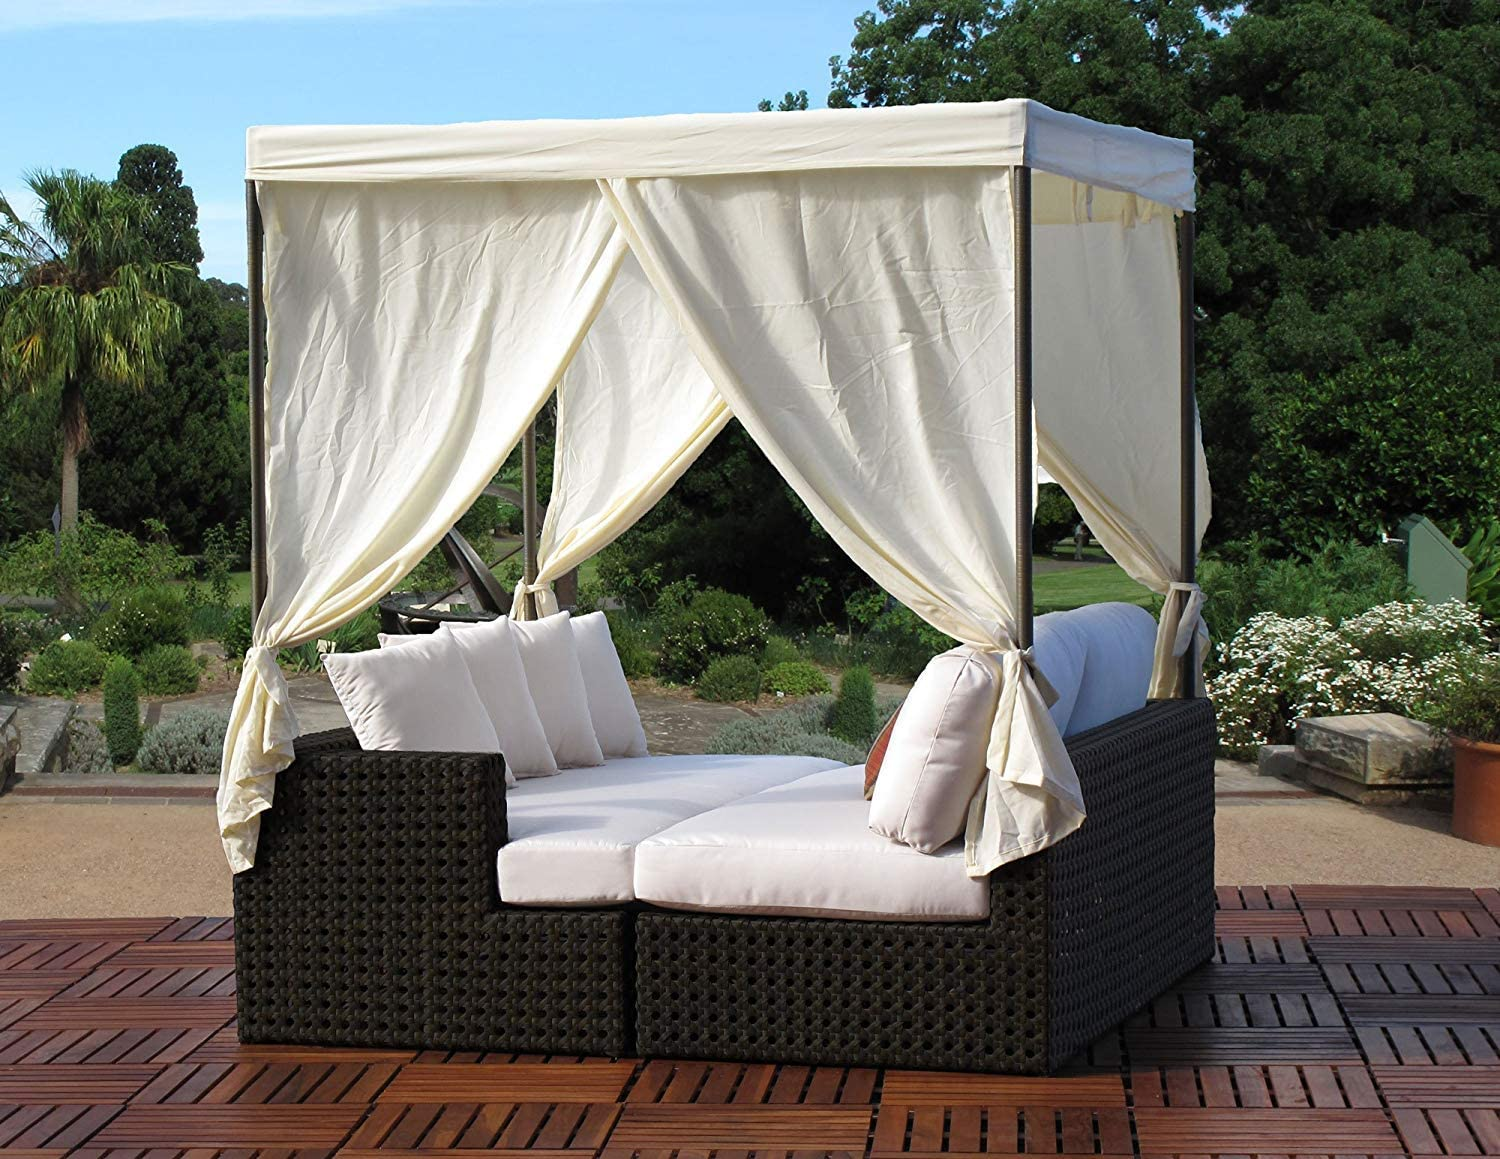 Very popular! Contract Department store Quality Outdoor Woven Assembled Wicker Daybed Fully